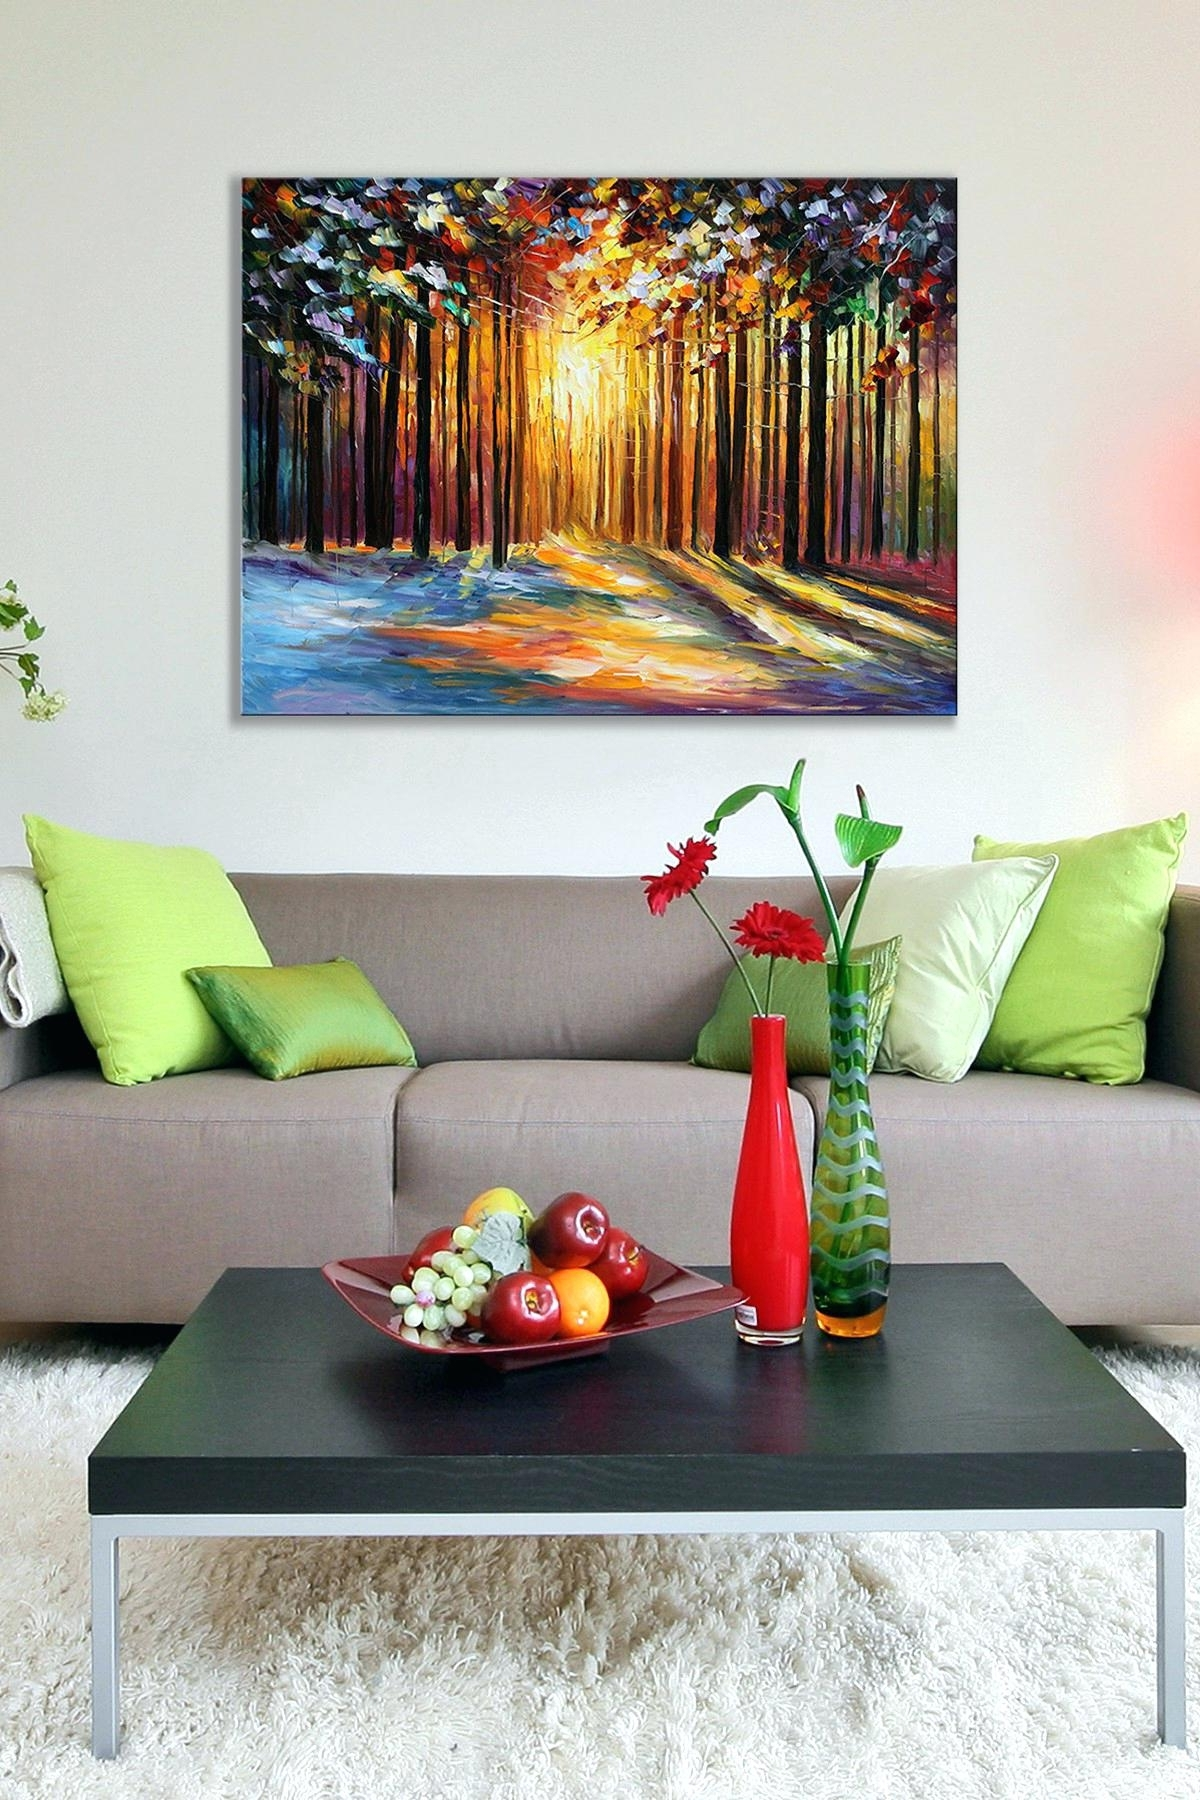 Most Popular Wall Ideas: Feng Shui Wall Art Feng Shui Wall Art Dining Room For Feng Shui Wall Art (View 10 of 15)